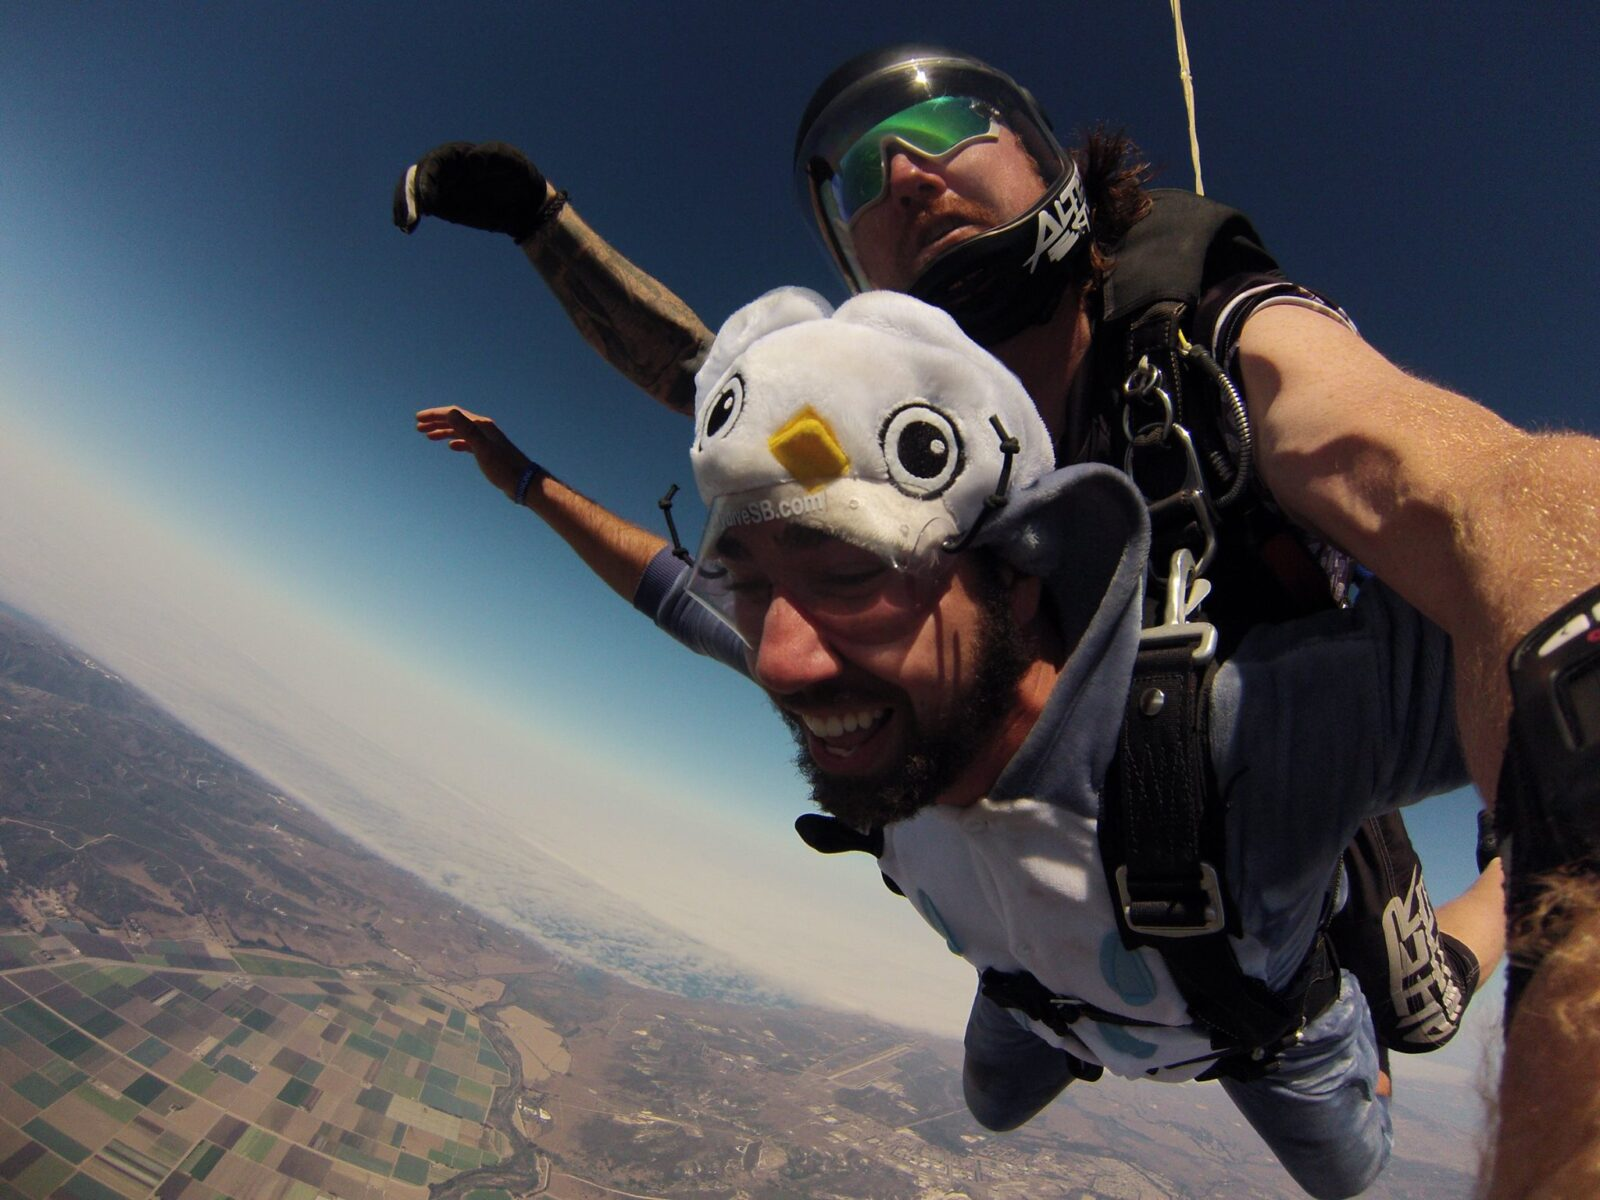 man wearing a costume while tandem skydiving